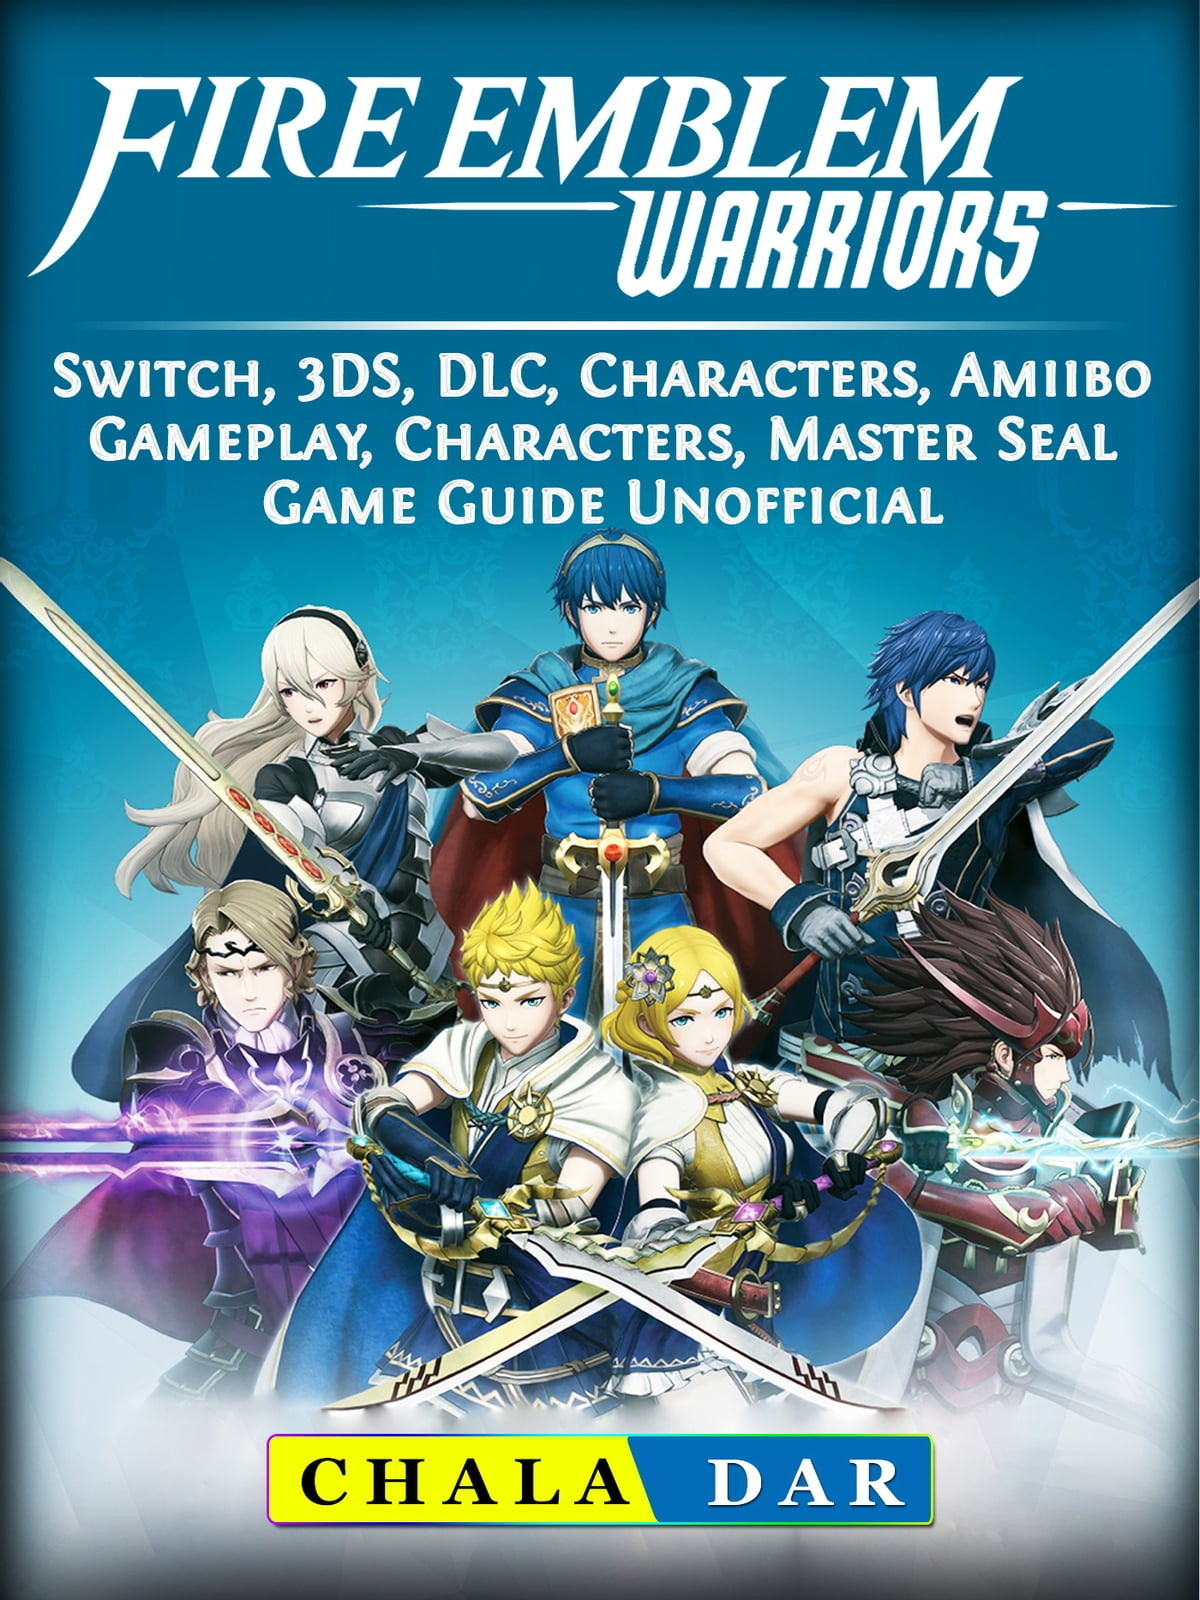 Fire Emblem Warriors, Switch, 3DS, DLC, Characters, Amiibo, Gameplay,  Characters, Master Seal, Game Guide Unofficial ebooks by Chala Dar -  Rakuten